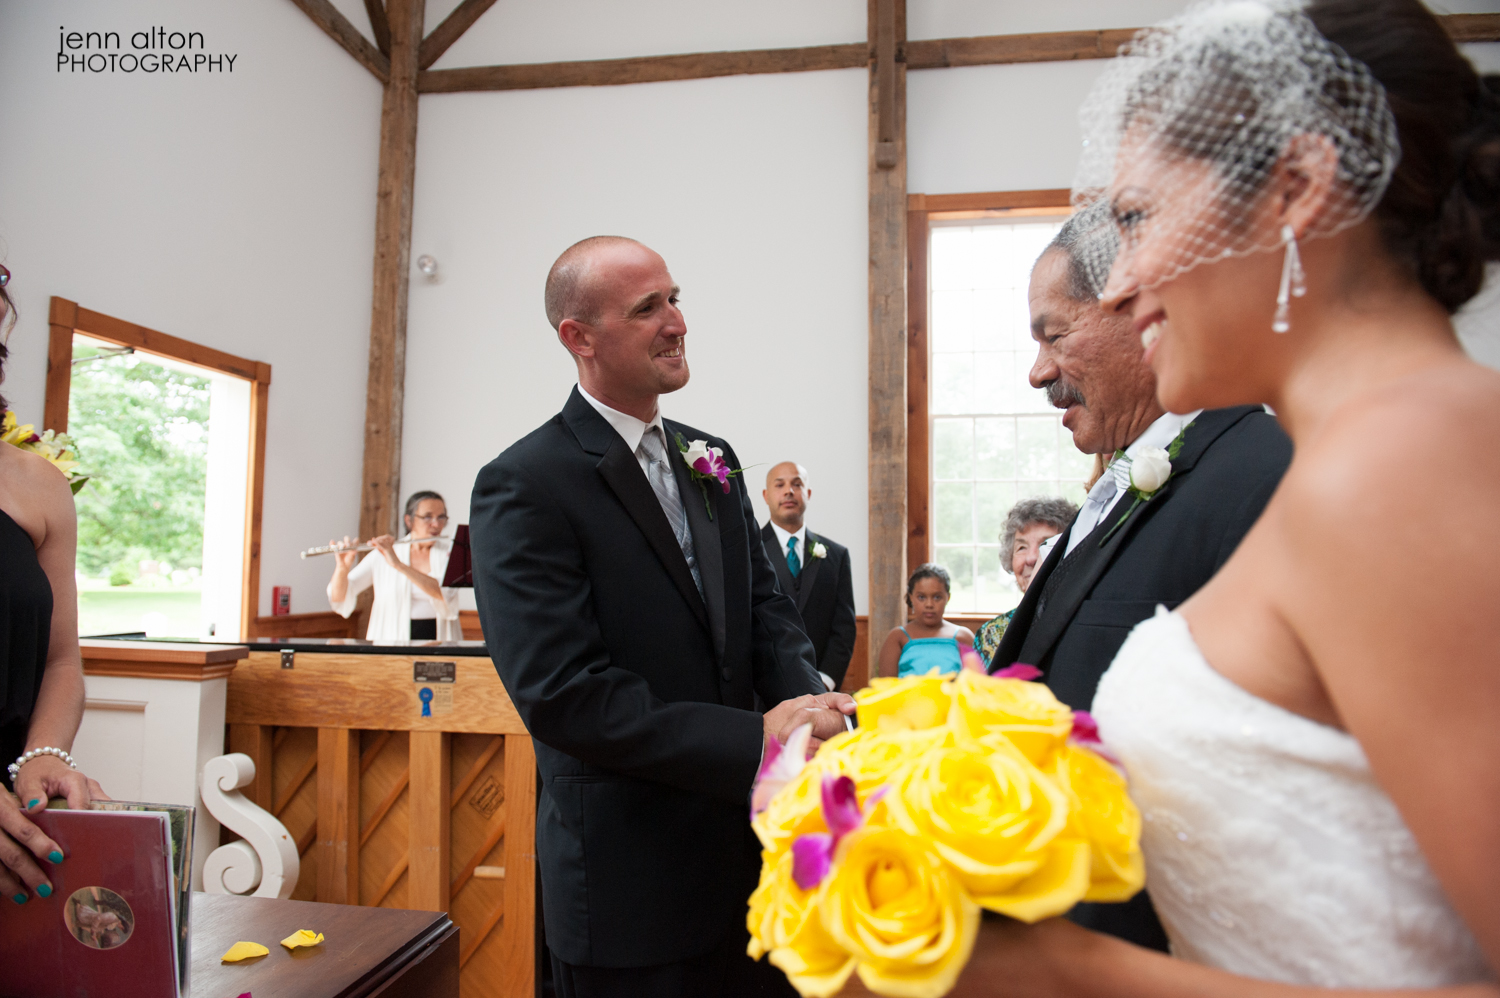 Bride being given away by her Father, entry to the wedding ceremony, Mashpee Old Indian Meeting House